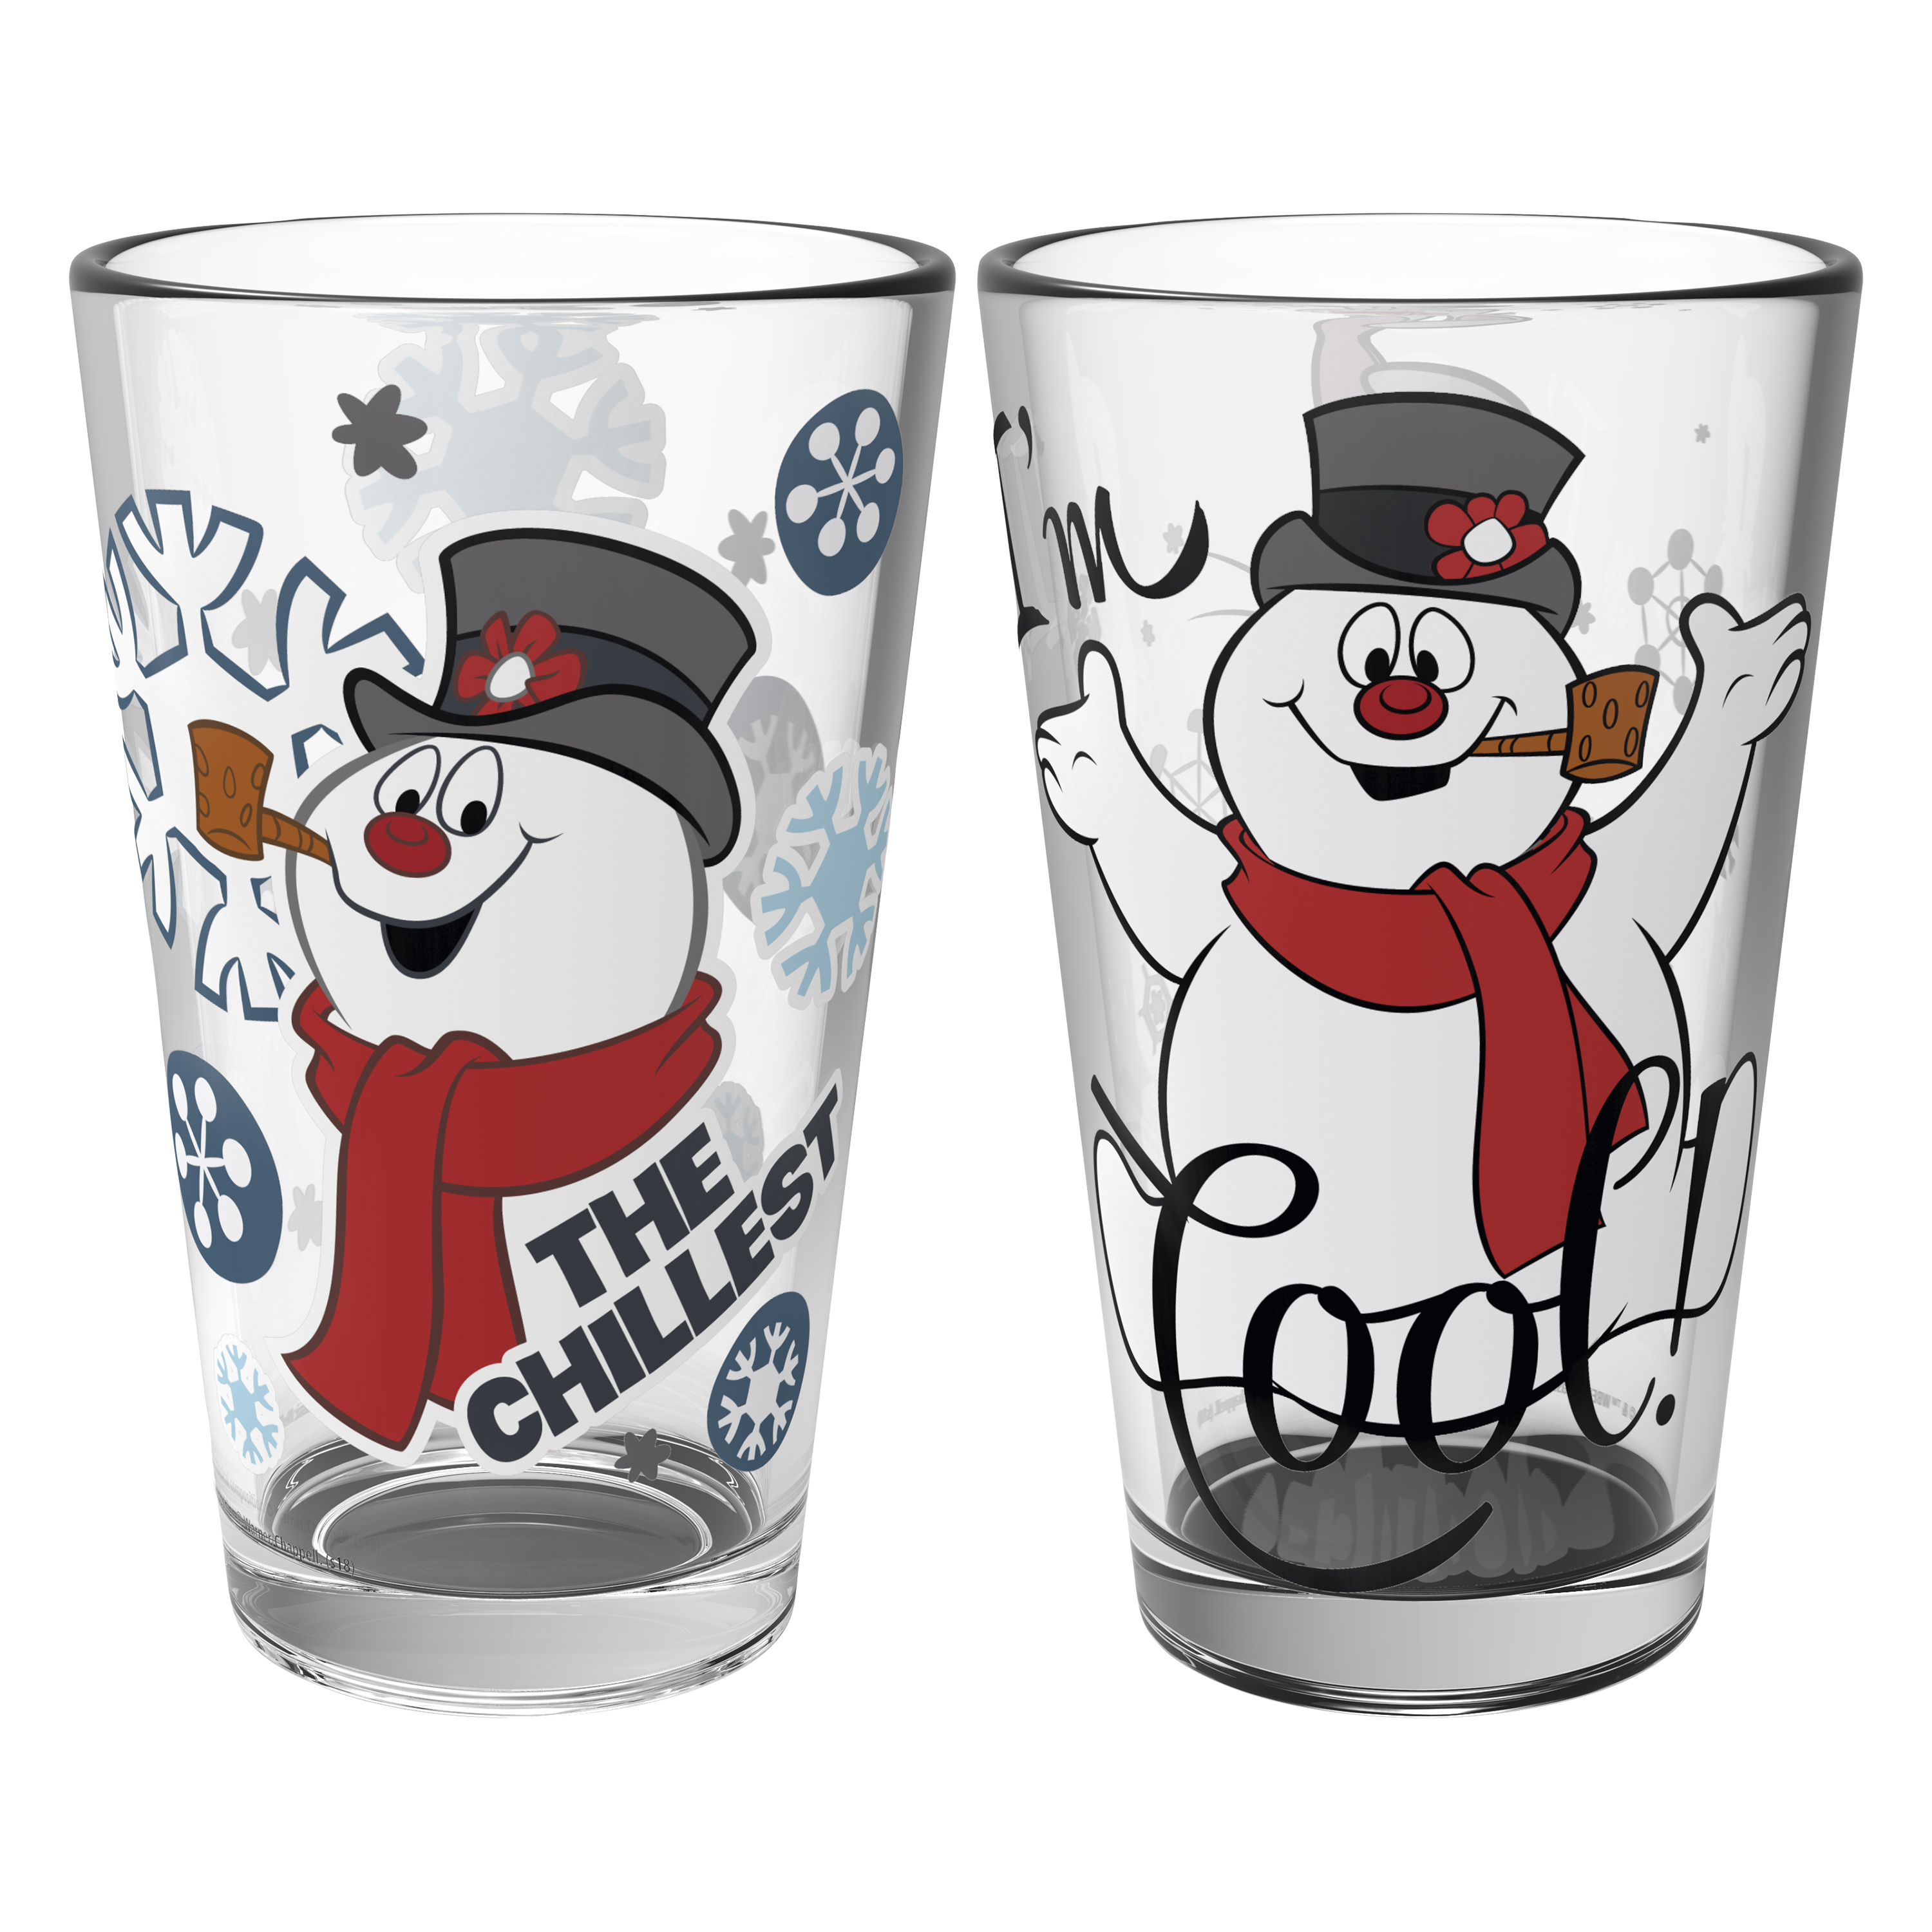 Christmas Collectibles 16 ounce Pint Glasses, Frosty the Snowman, 2-piece set slideshow image 2